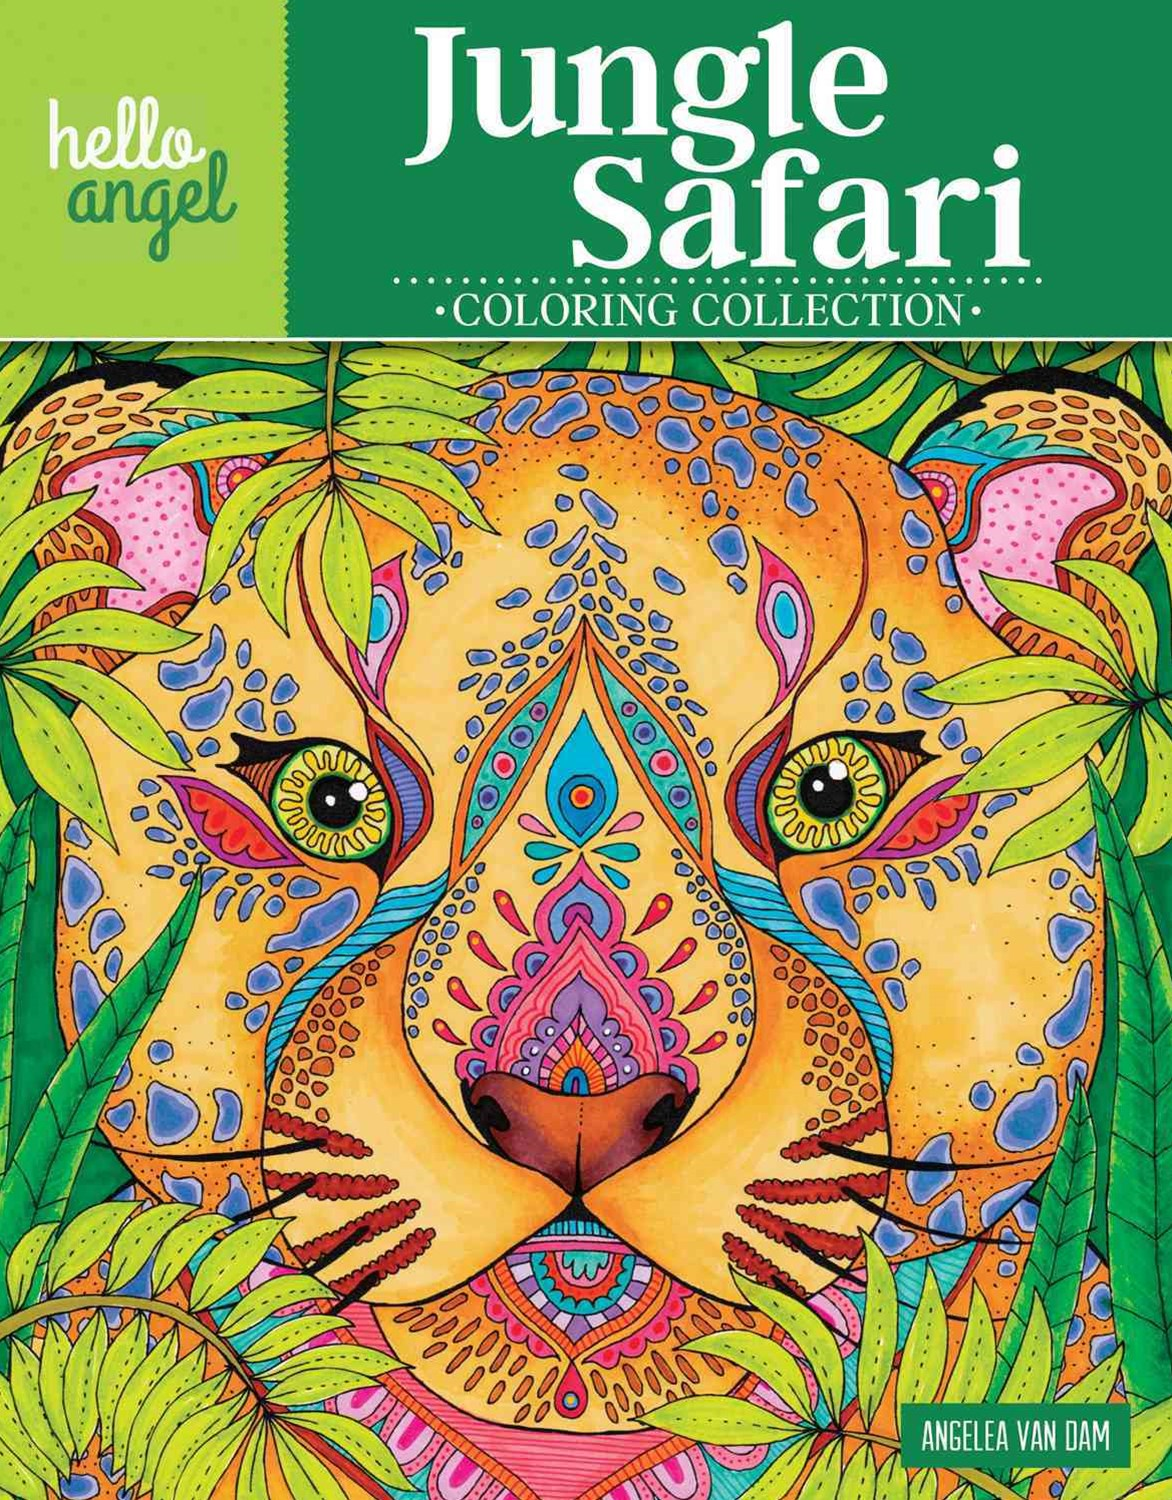 Hello Angel Jungle Safari Coloring Collection